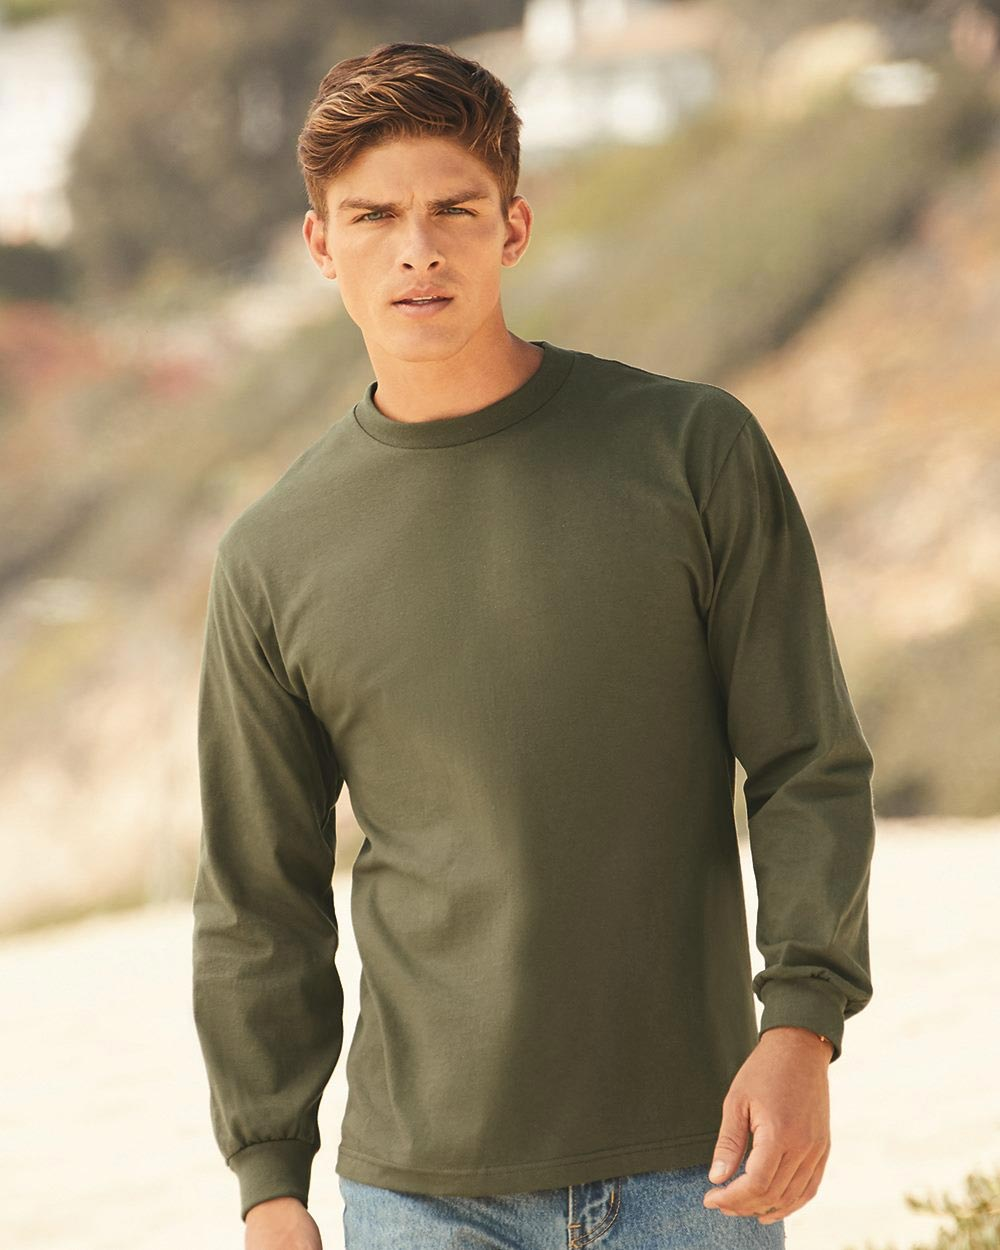 Alstyle 1304 - Classic Long Sleeve T-Shirt